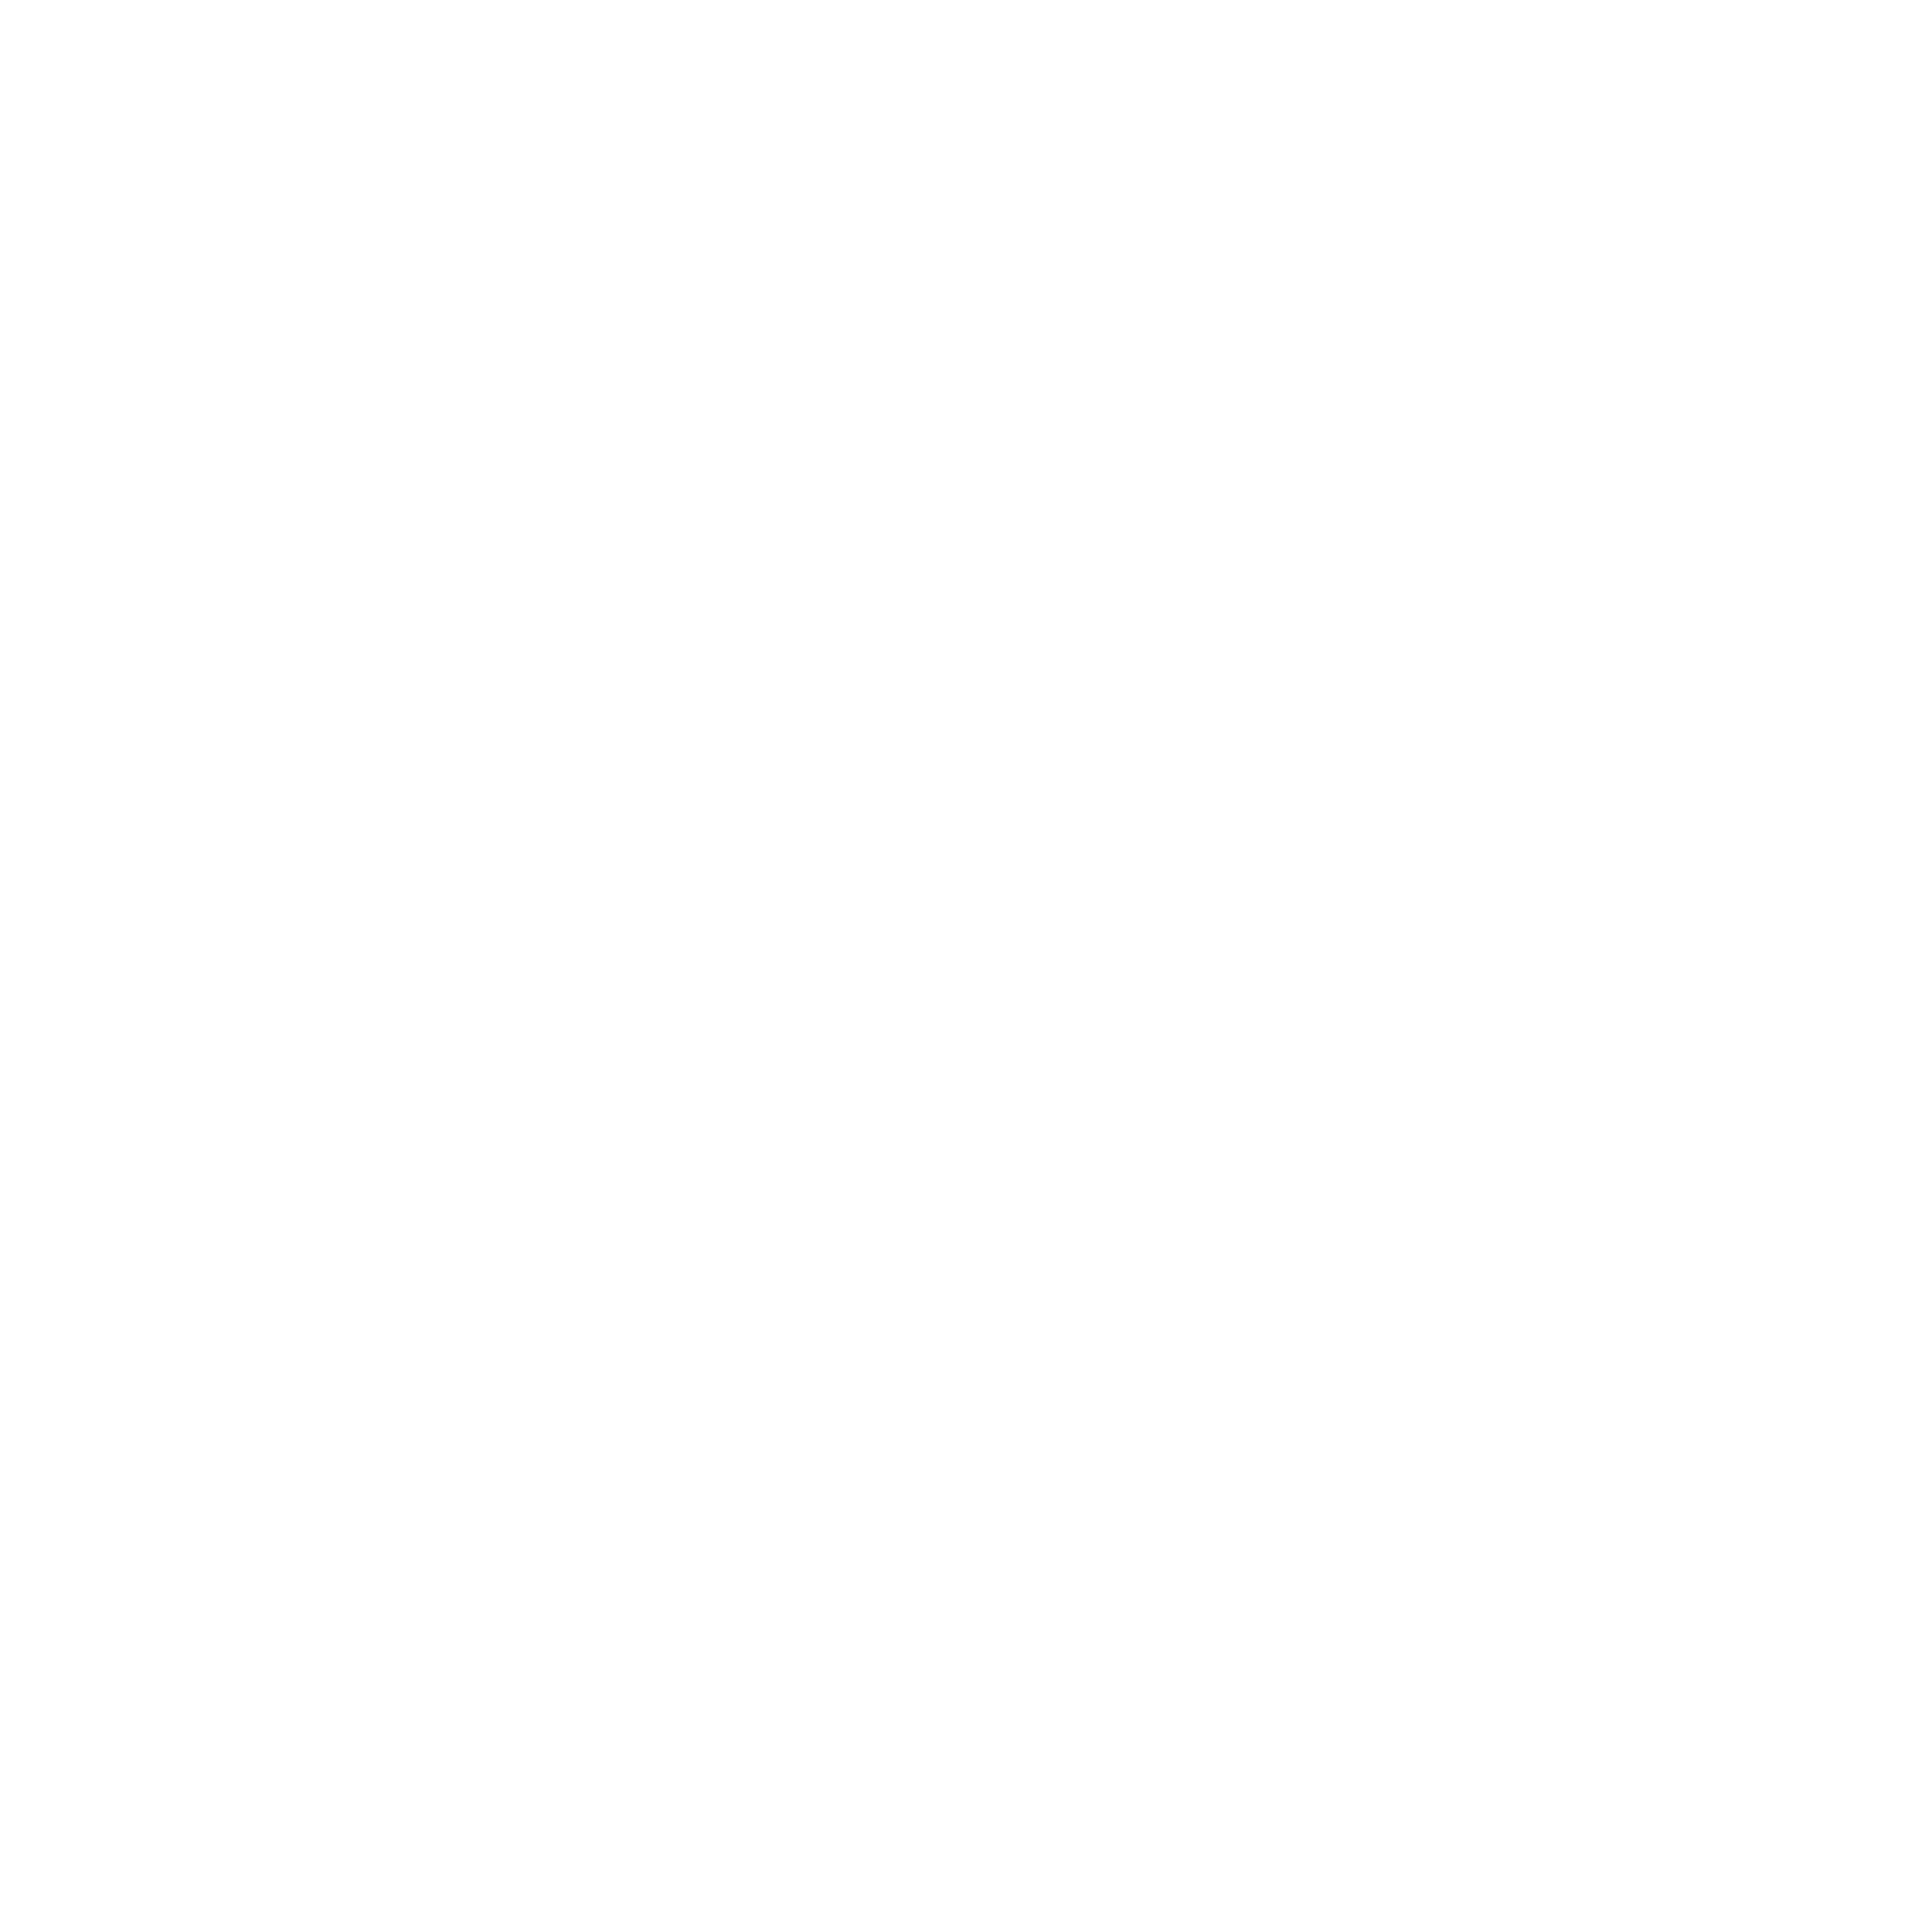 floragibsonphotography_transparency.png